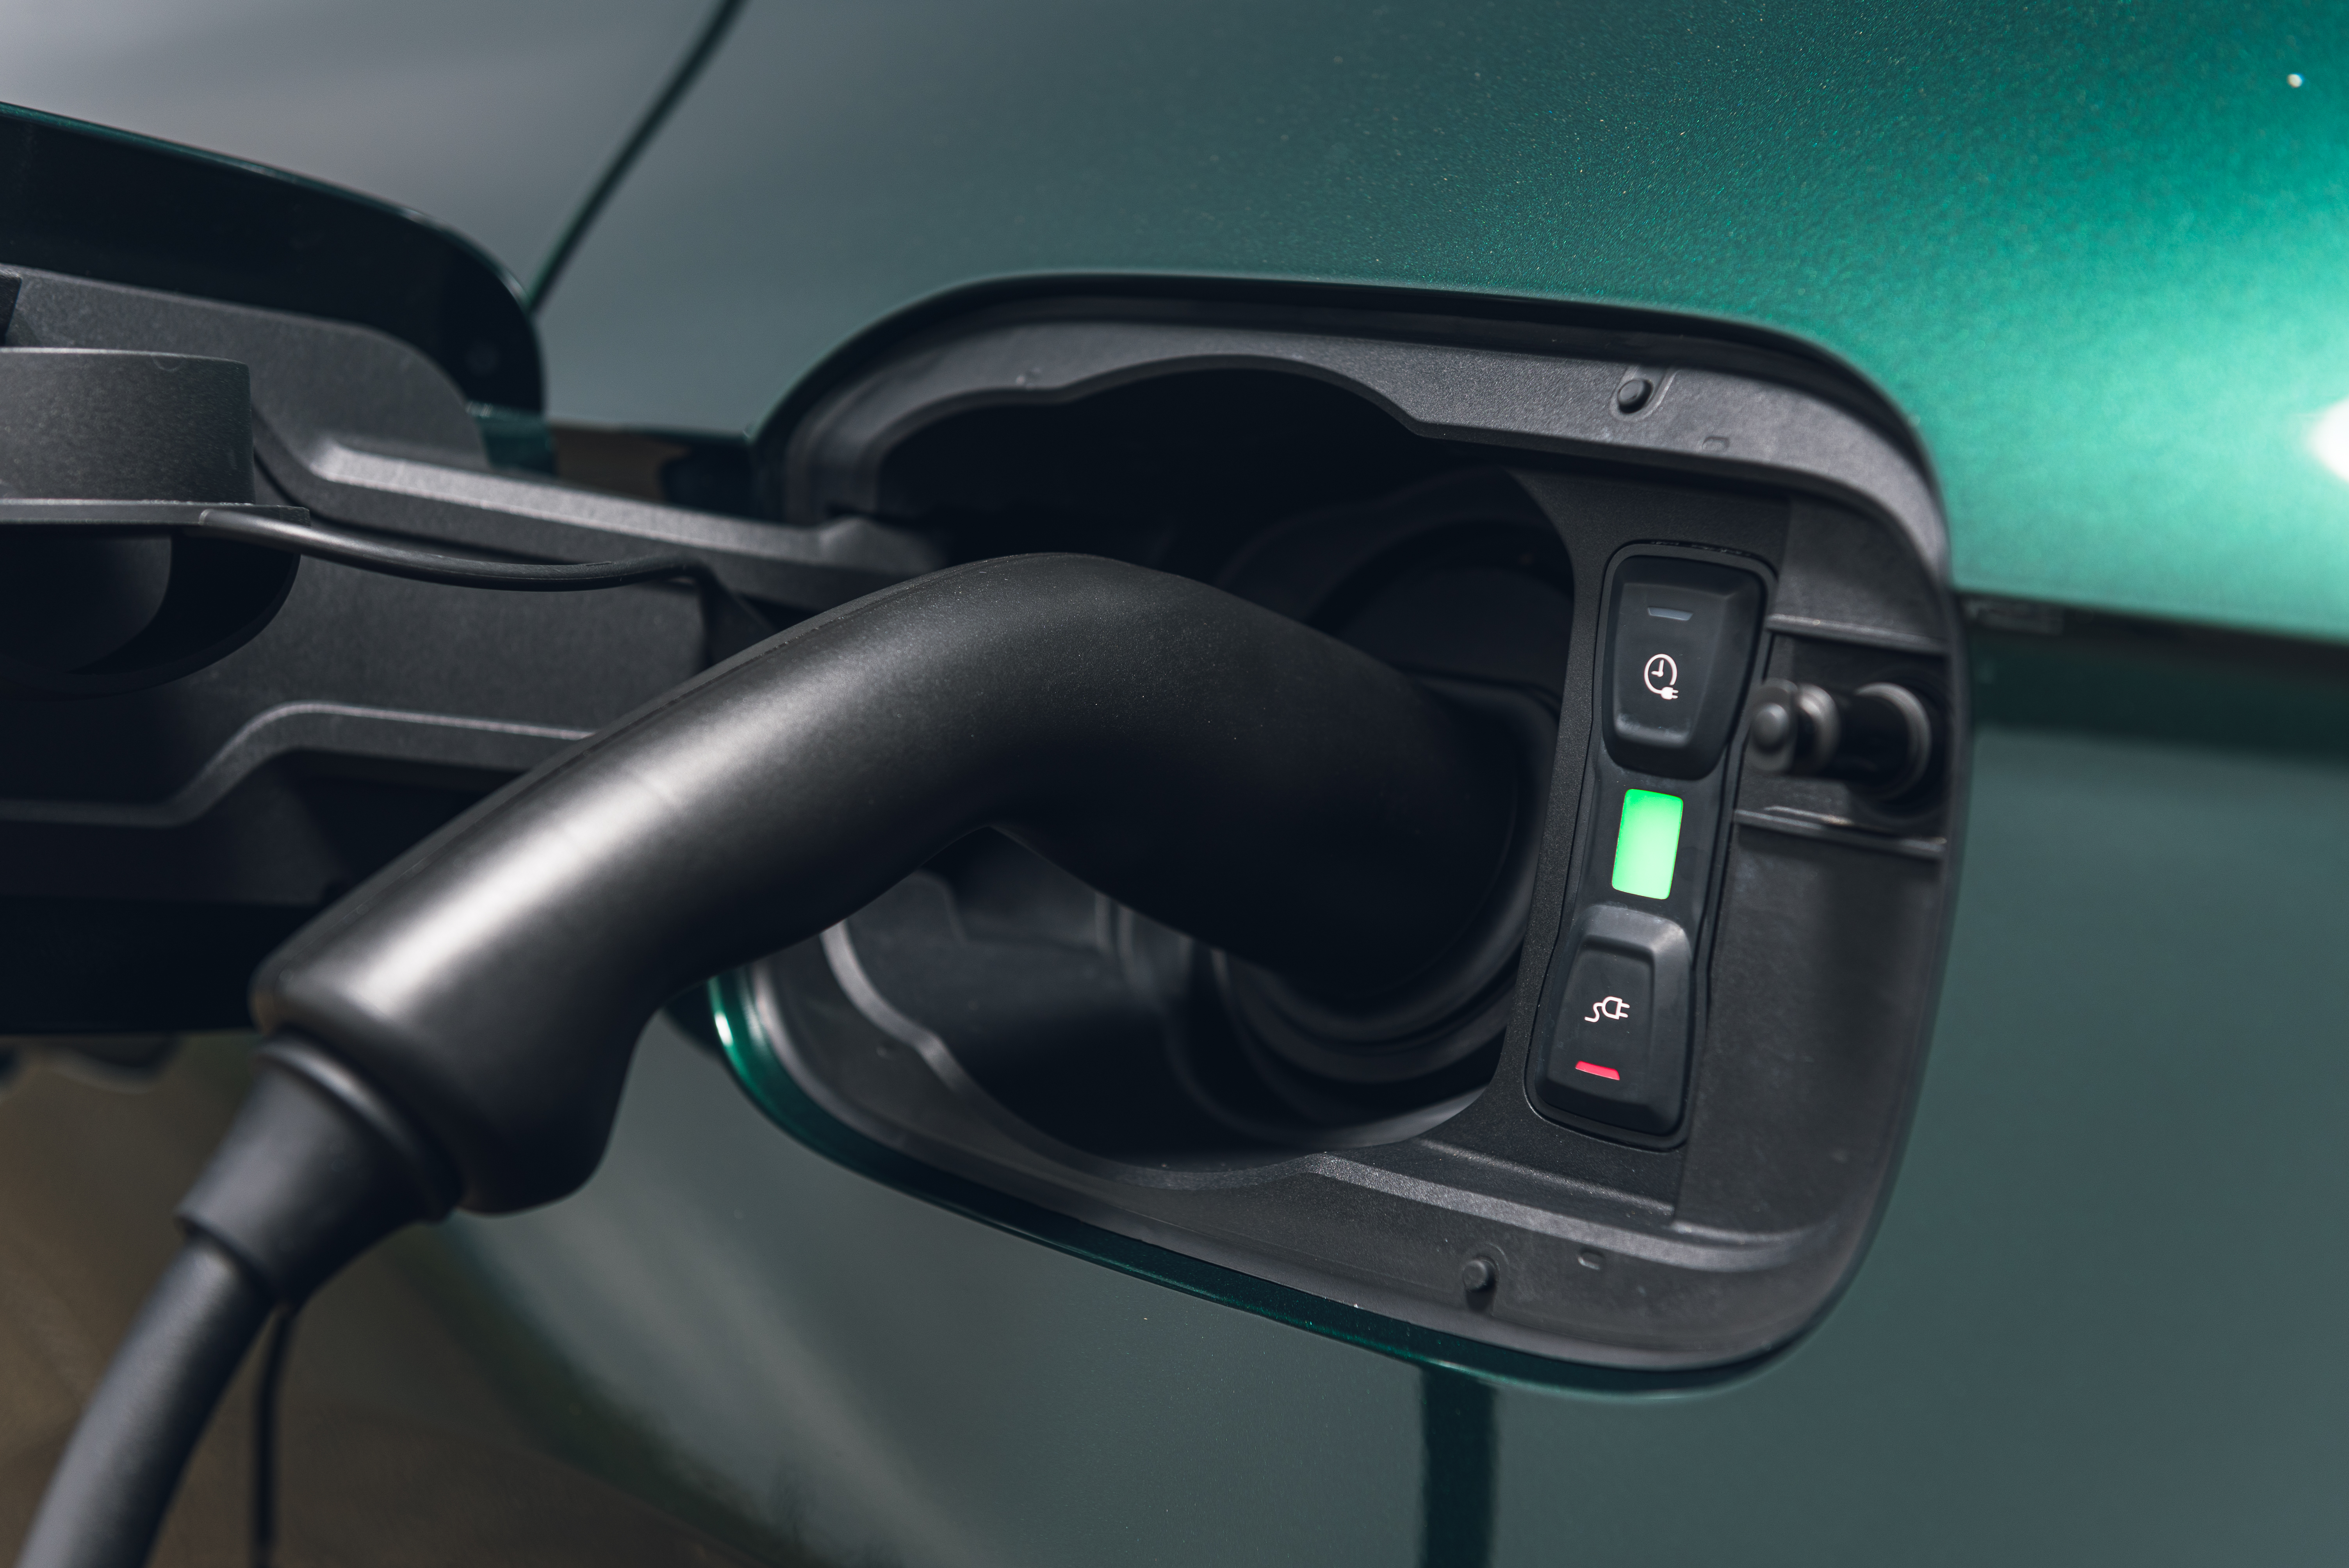 Charging the Q5 hybrid is simple